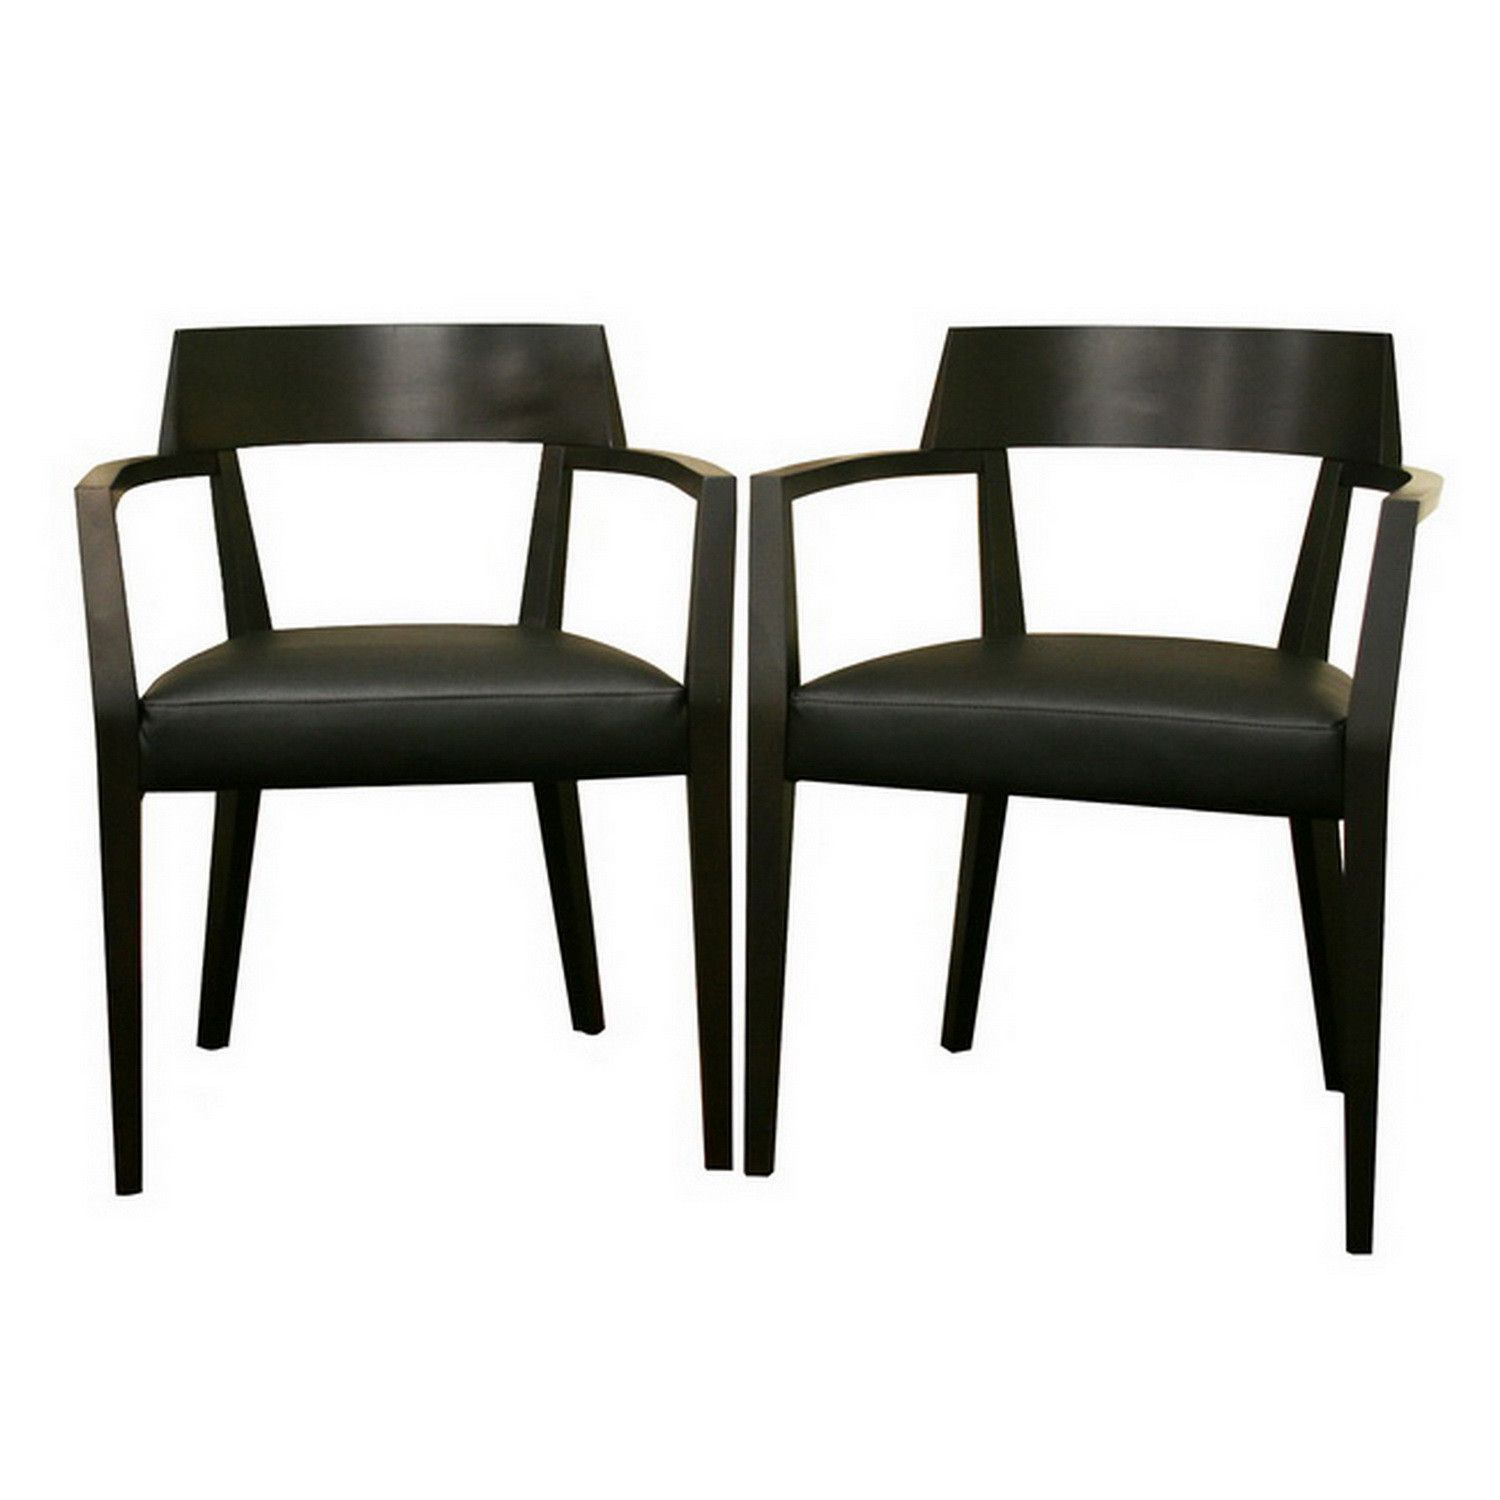 leather dining chairs modern. Baxton Studio Laine Wenge Wood And Faux Leather Modern Dining Chair - Set Of 2 Chairs